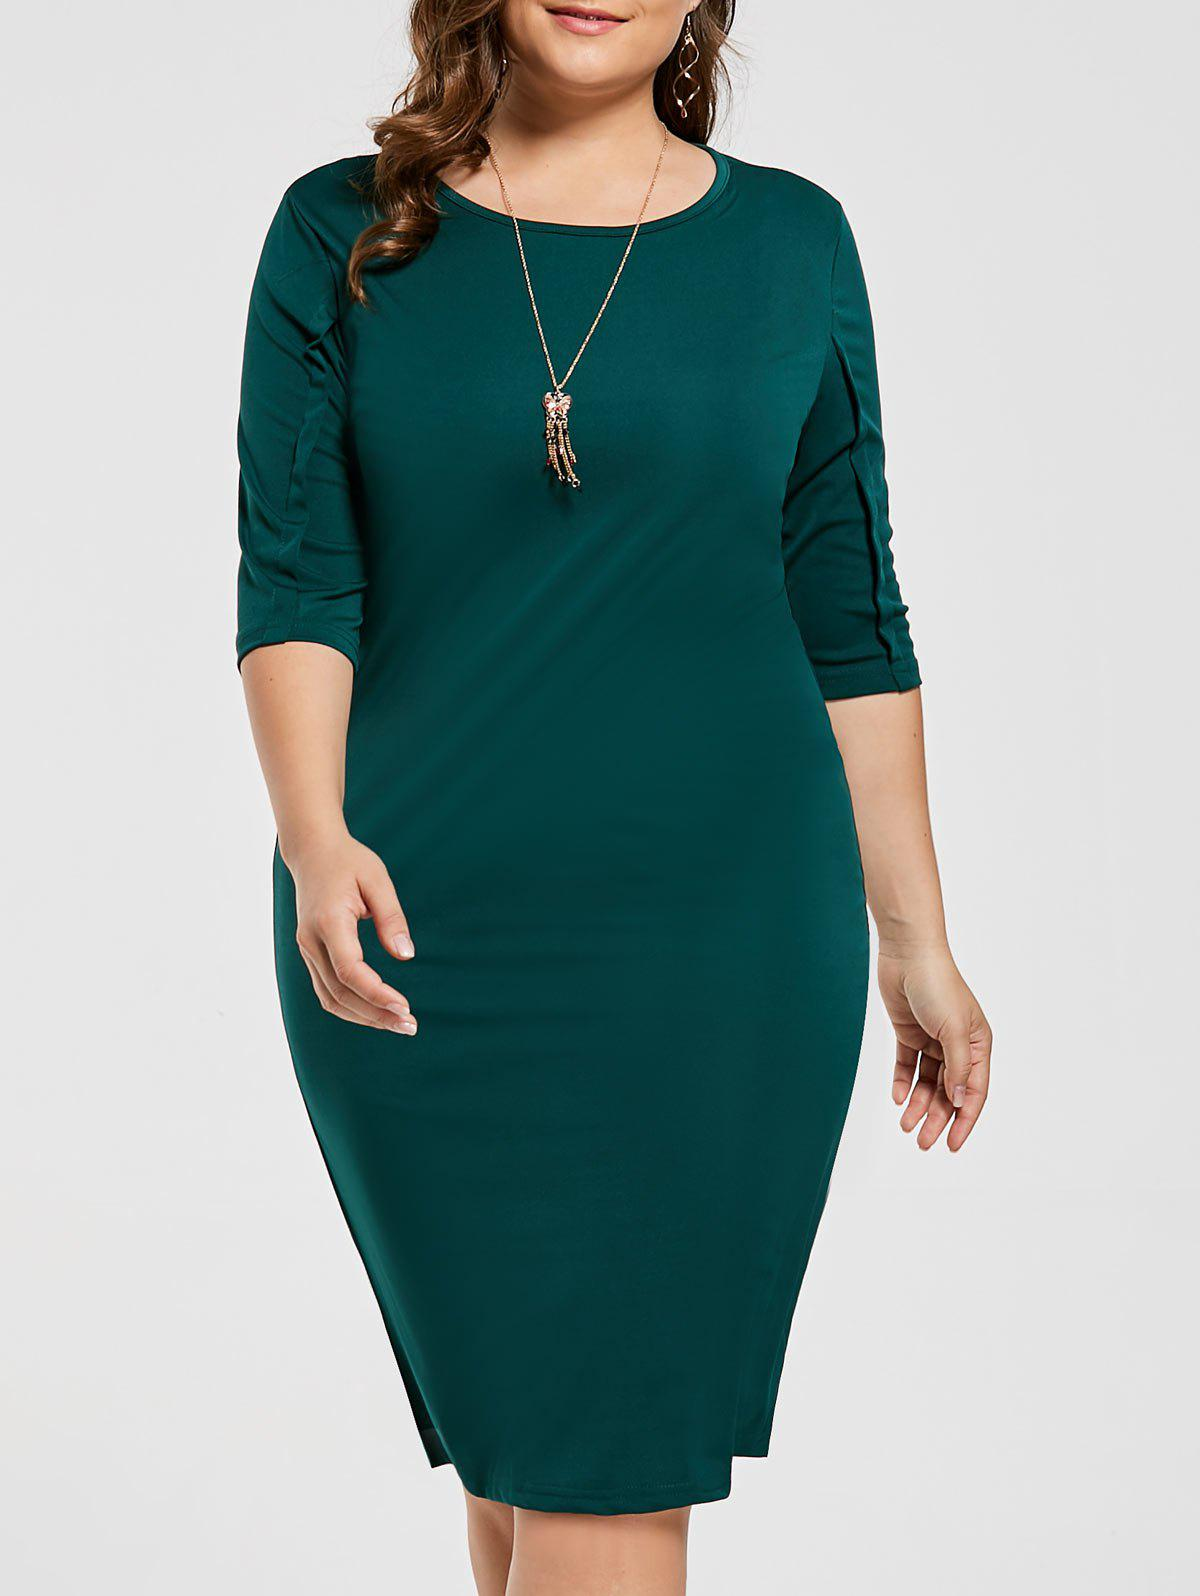 Knee Length Plus Size Sheath DressWOMEN<br><br>Size: 3XL; Color: DEEP GREEN; Style: Casual; Material: Cotton Blend,Polyester; Silhouette: Sheath; Dresses Length: Knee-Length; Neckline: Scoop Neck; Sleeve Length: Half Sleeves; Pattern Type: Solid Color; With Belt: No; Season: Fall; Weight: 0.3600kg; Package Contents: 1 x Dress;